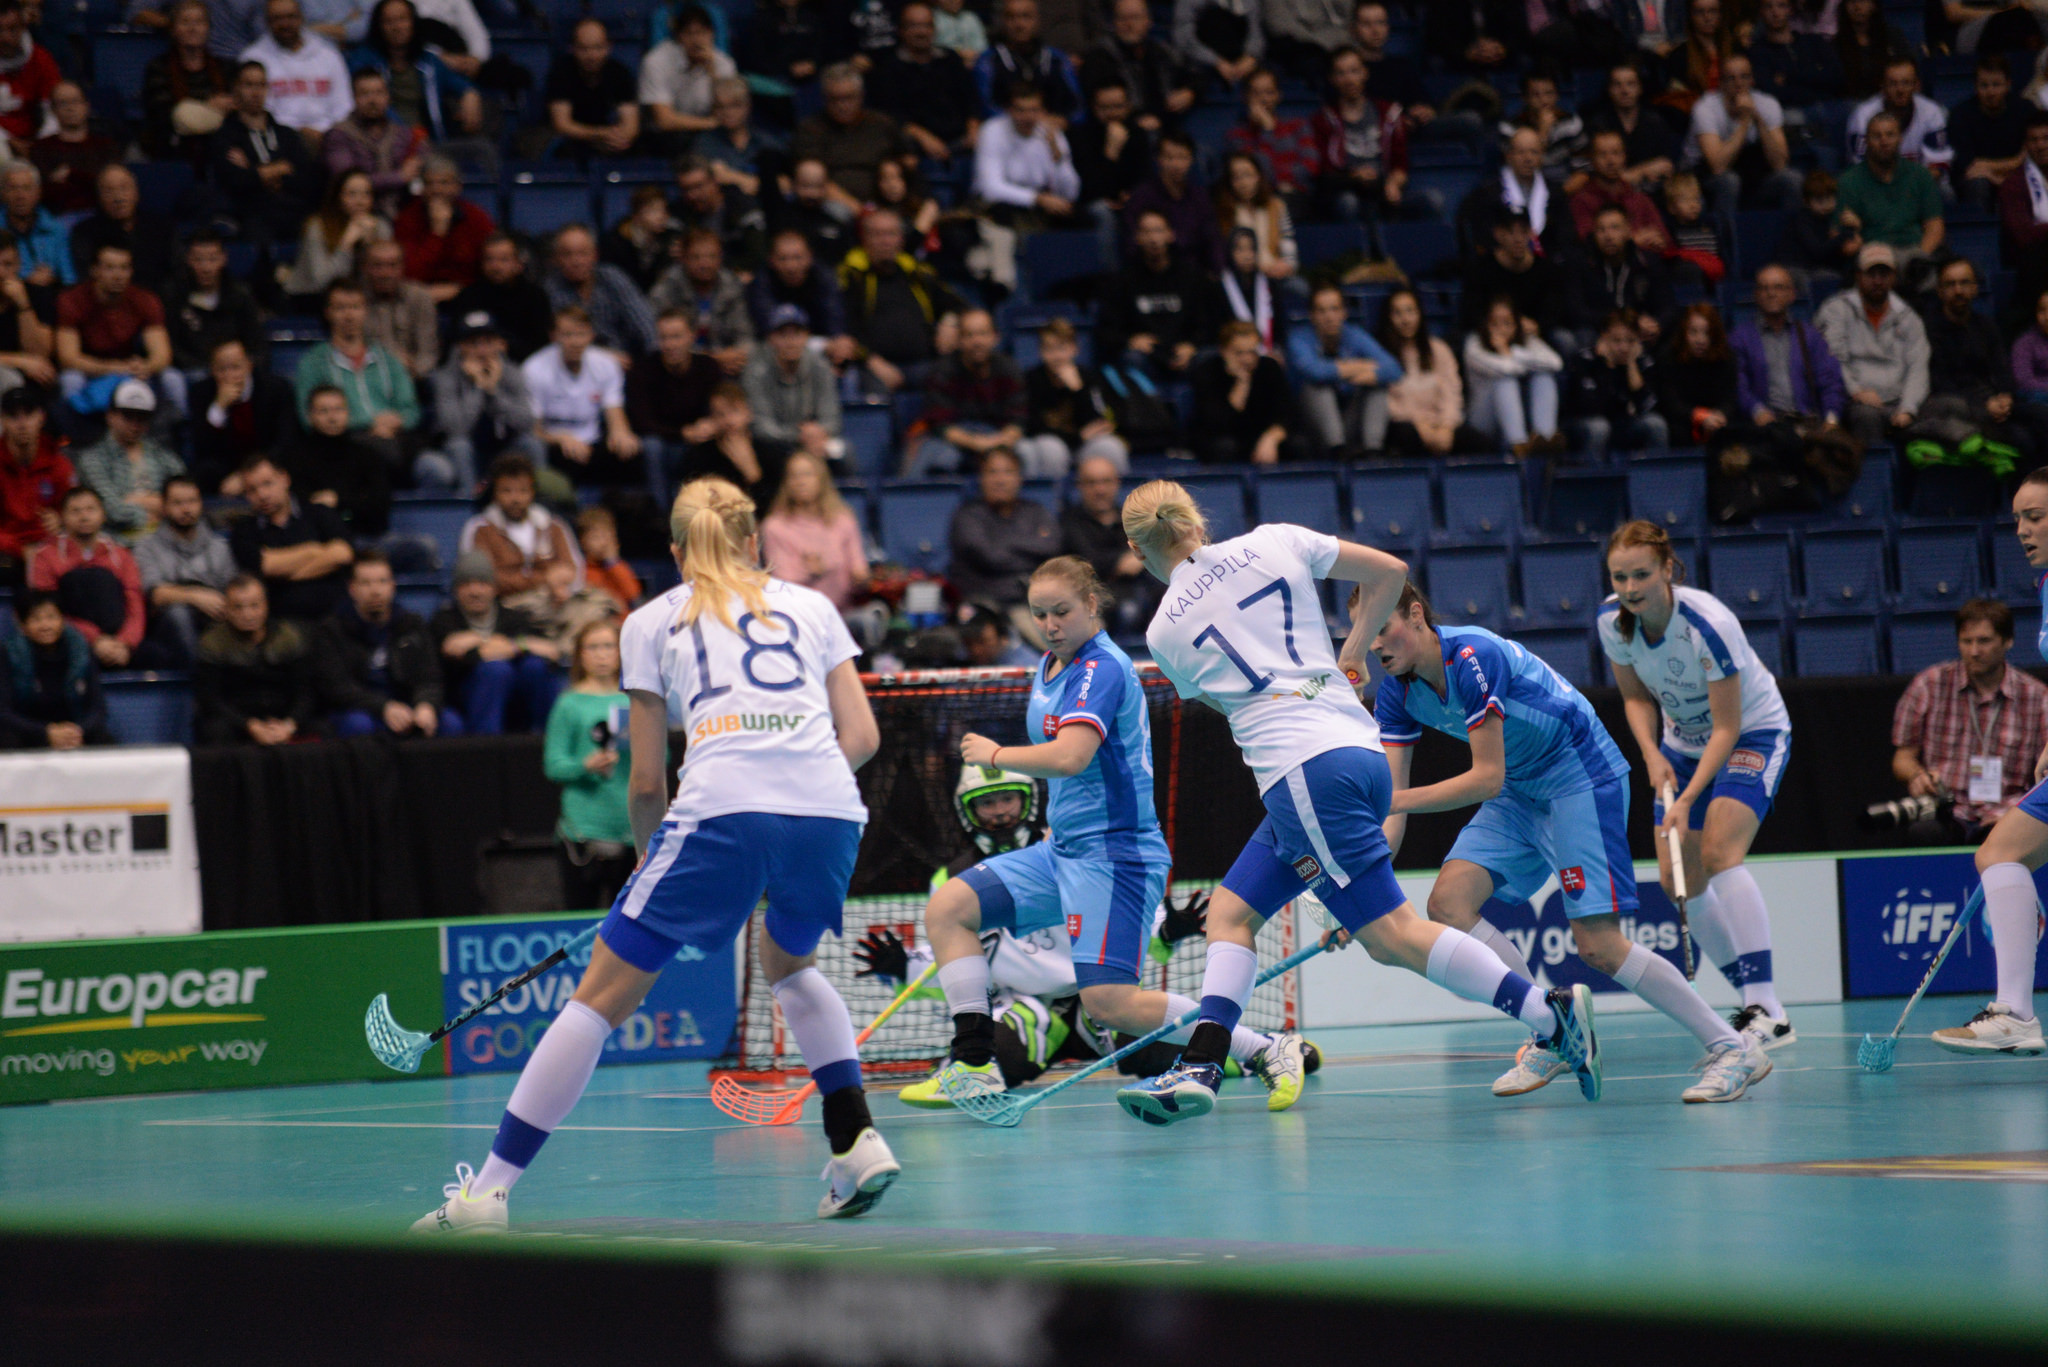 Finland proved too strong for the host nation as they ran out comfortable winners ©IFF